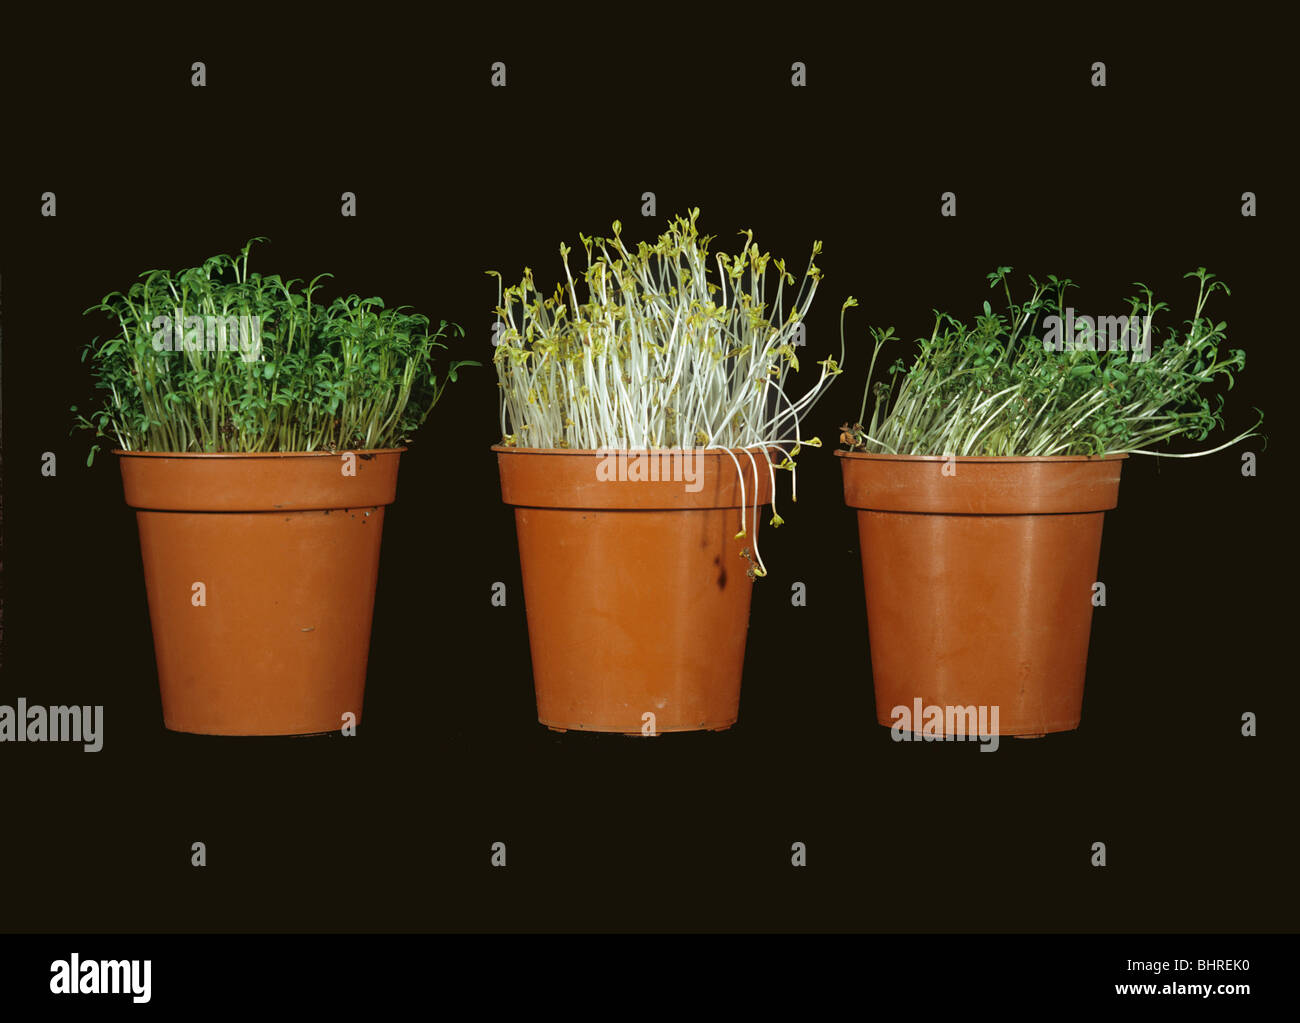 cress seedlings response to no light and directional light stock photo 28175924 alamy. Black Bedroom Furniture Sets. Home Design Ideas